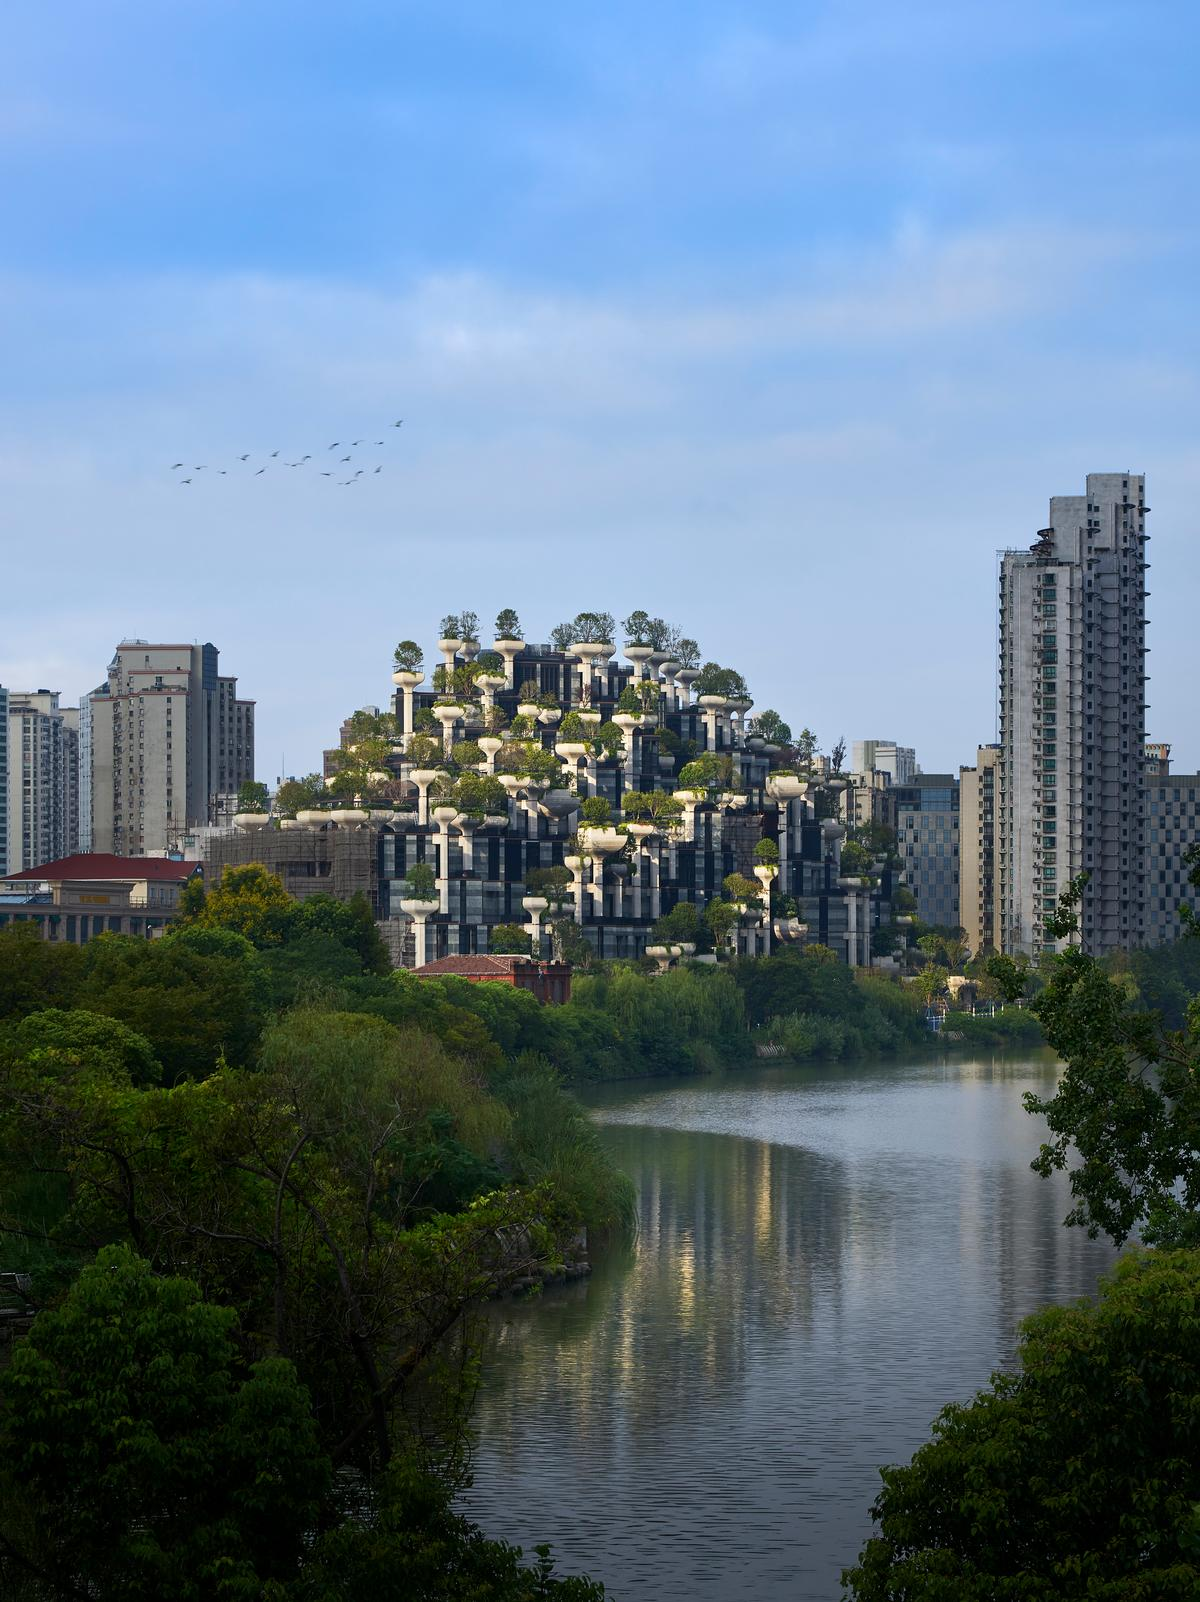 1000 Trees is scheduled to be completed in 2020 / Qingyan Zhu